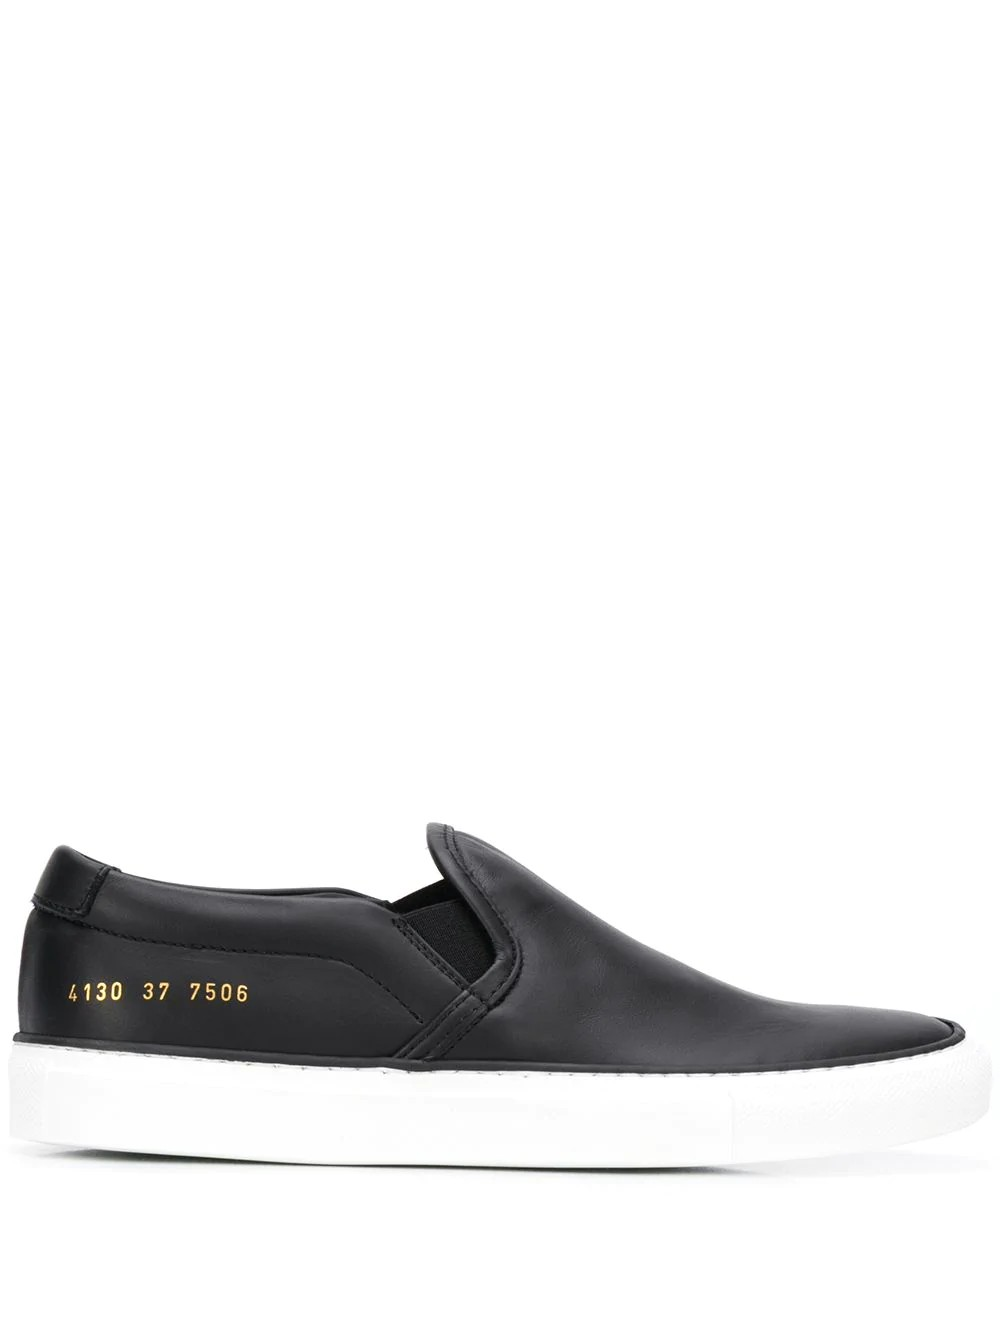 Slip On in Leather 4130